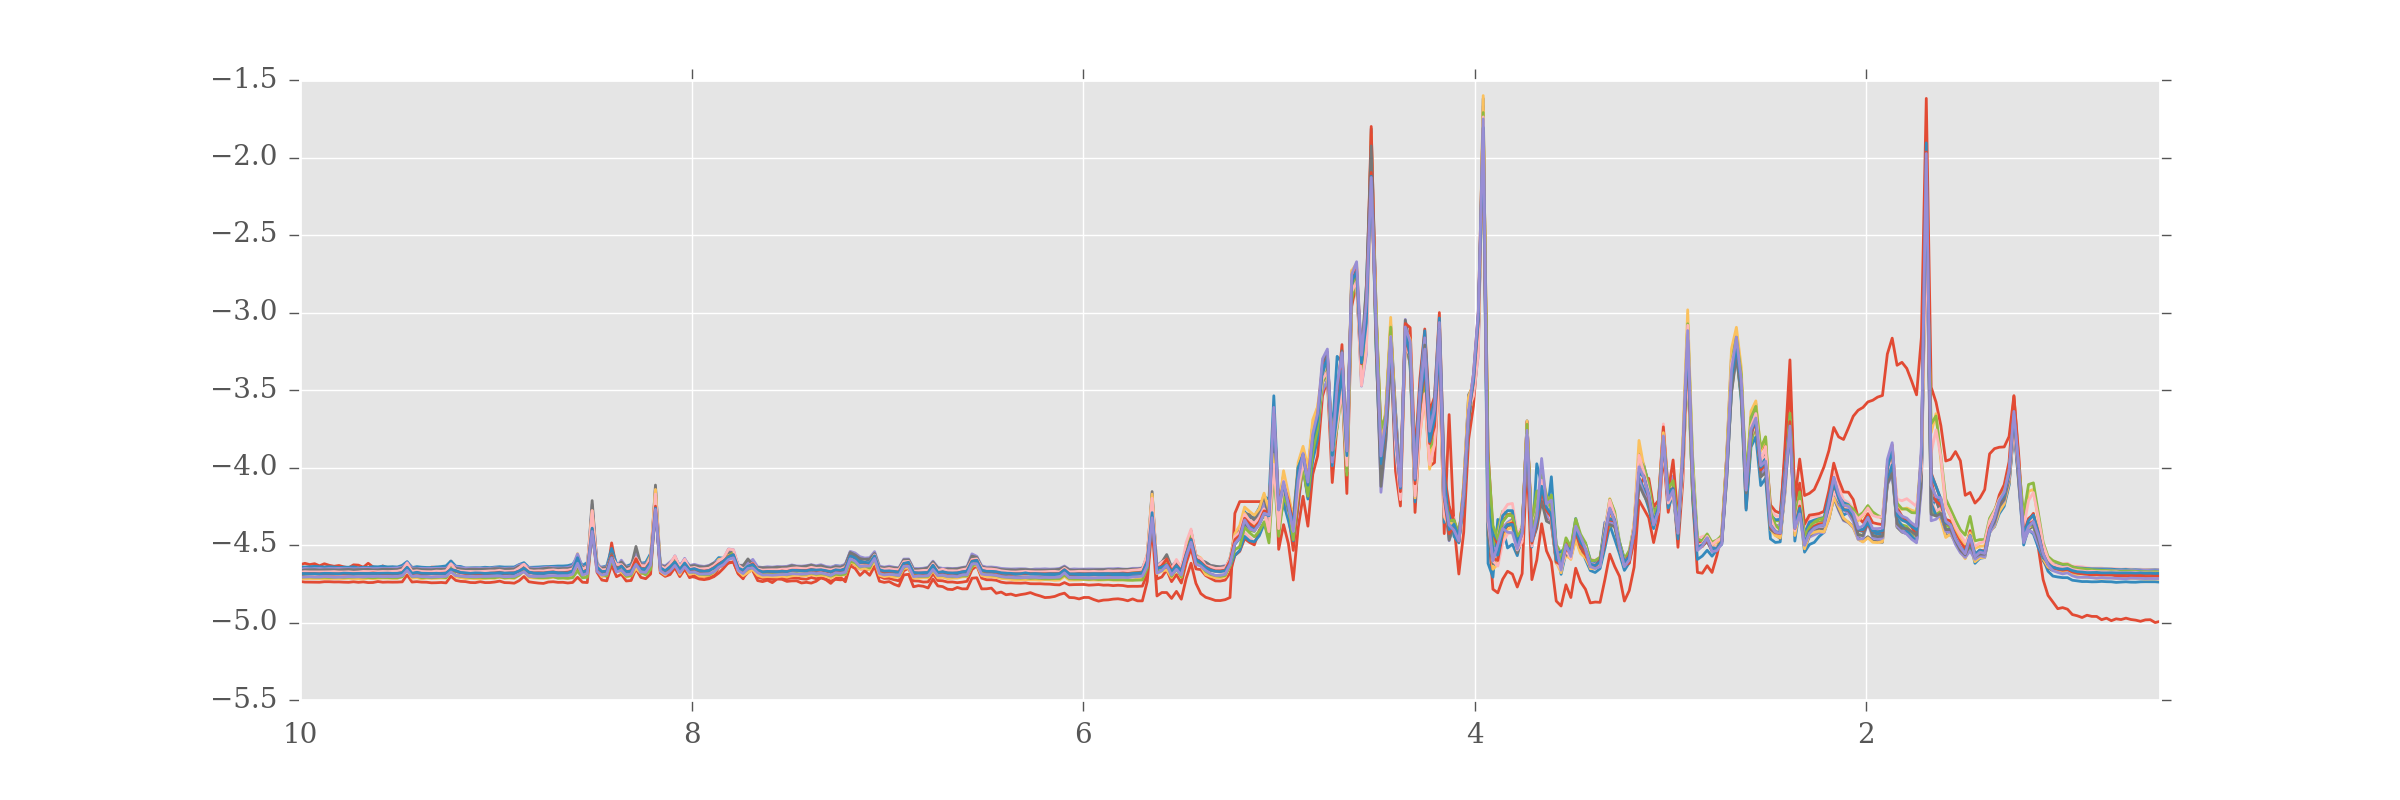 The processed NMR data for our analysis